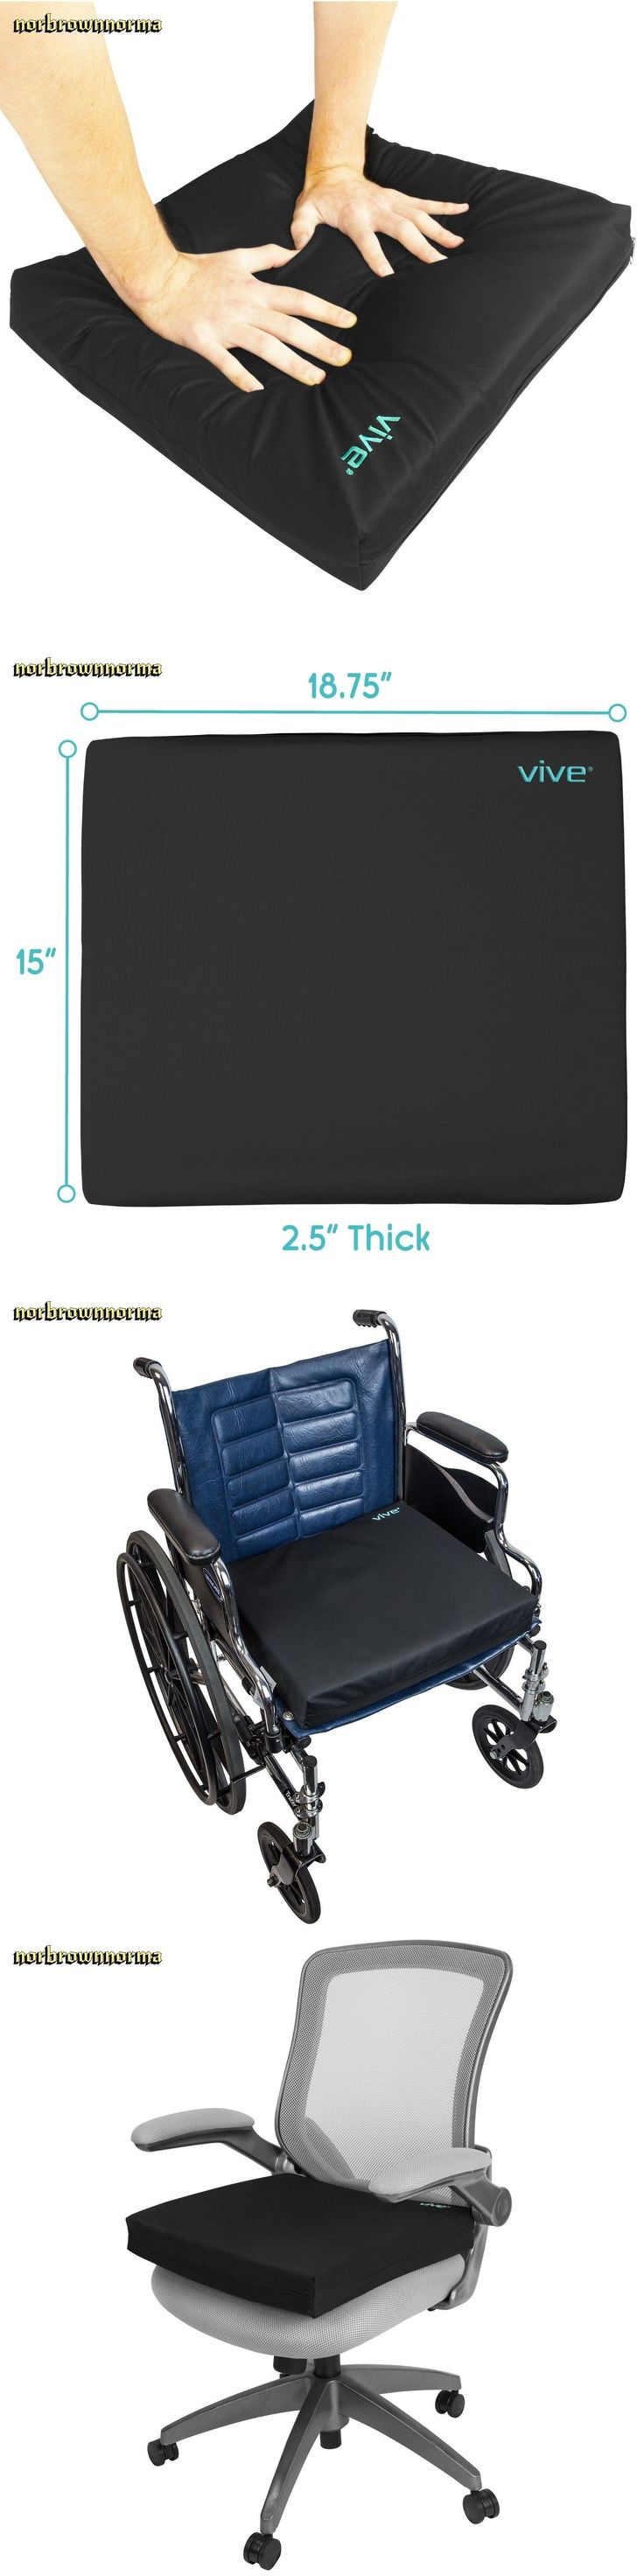 Massage Pillows and Bolsters: Wheelchair Cushion By Vive Gel Seat Pad For Coccyx Back Support Sciatica New -> BUY IT NOW ONLY: $41.45 on eBay!